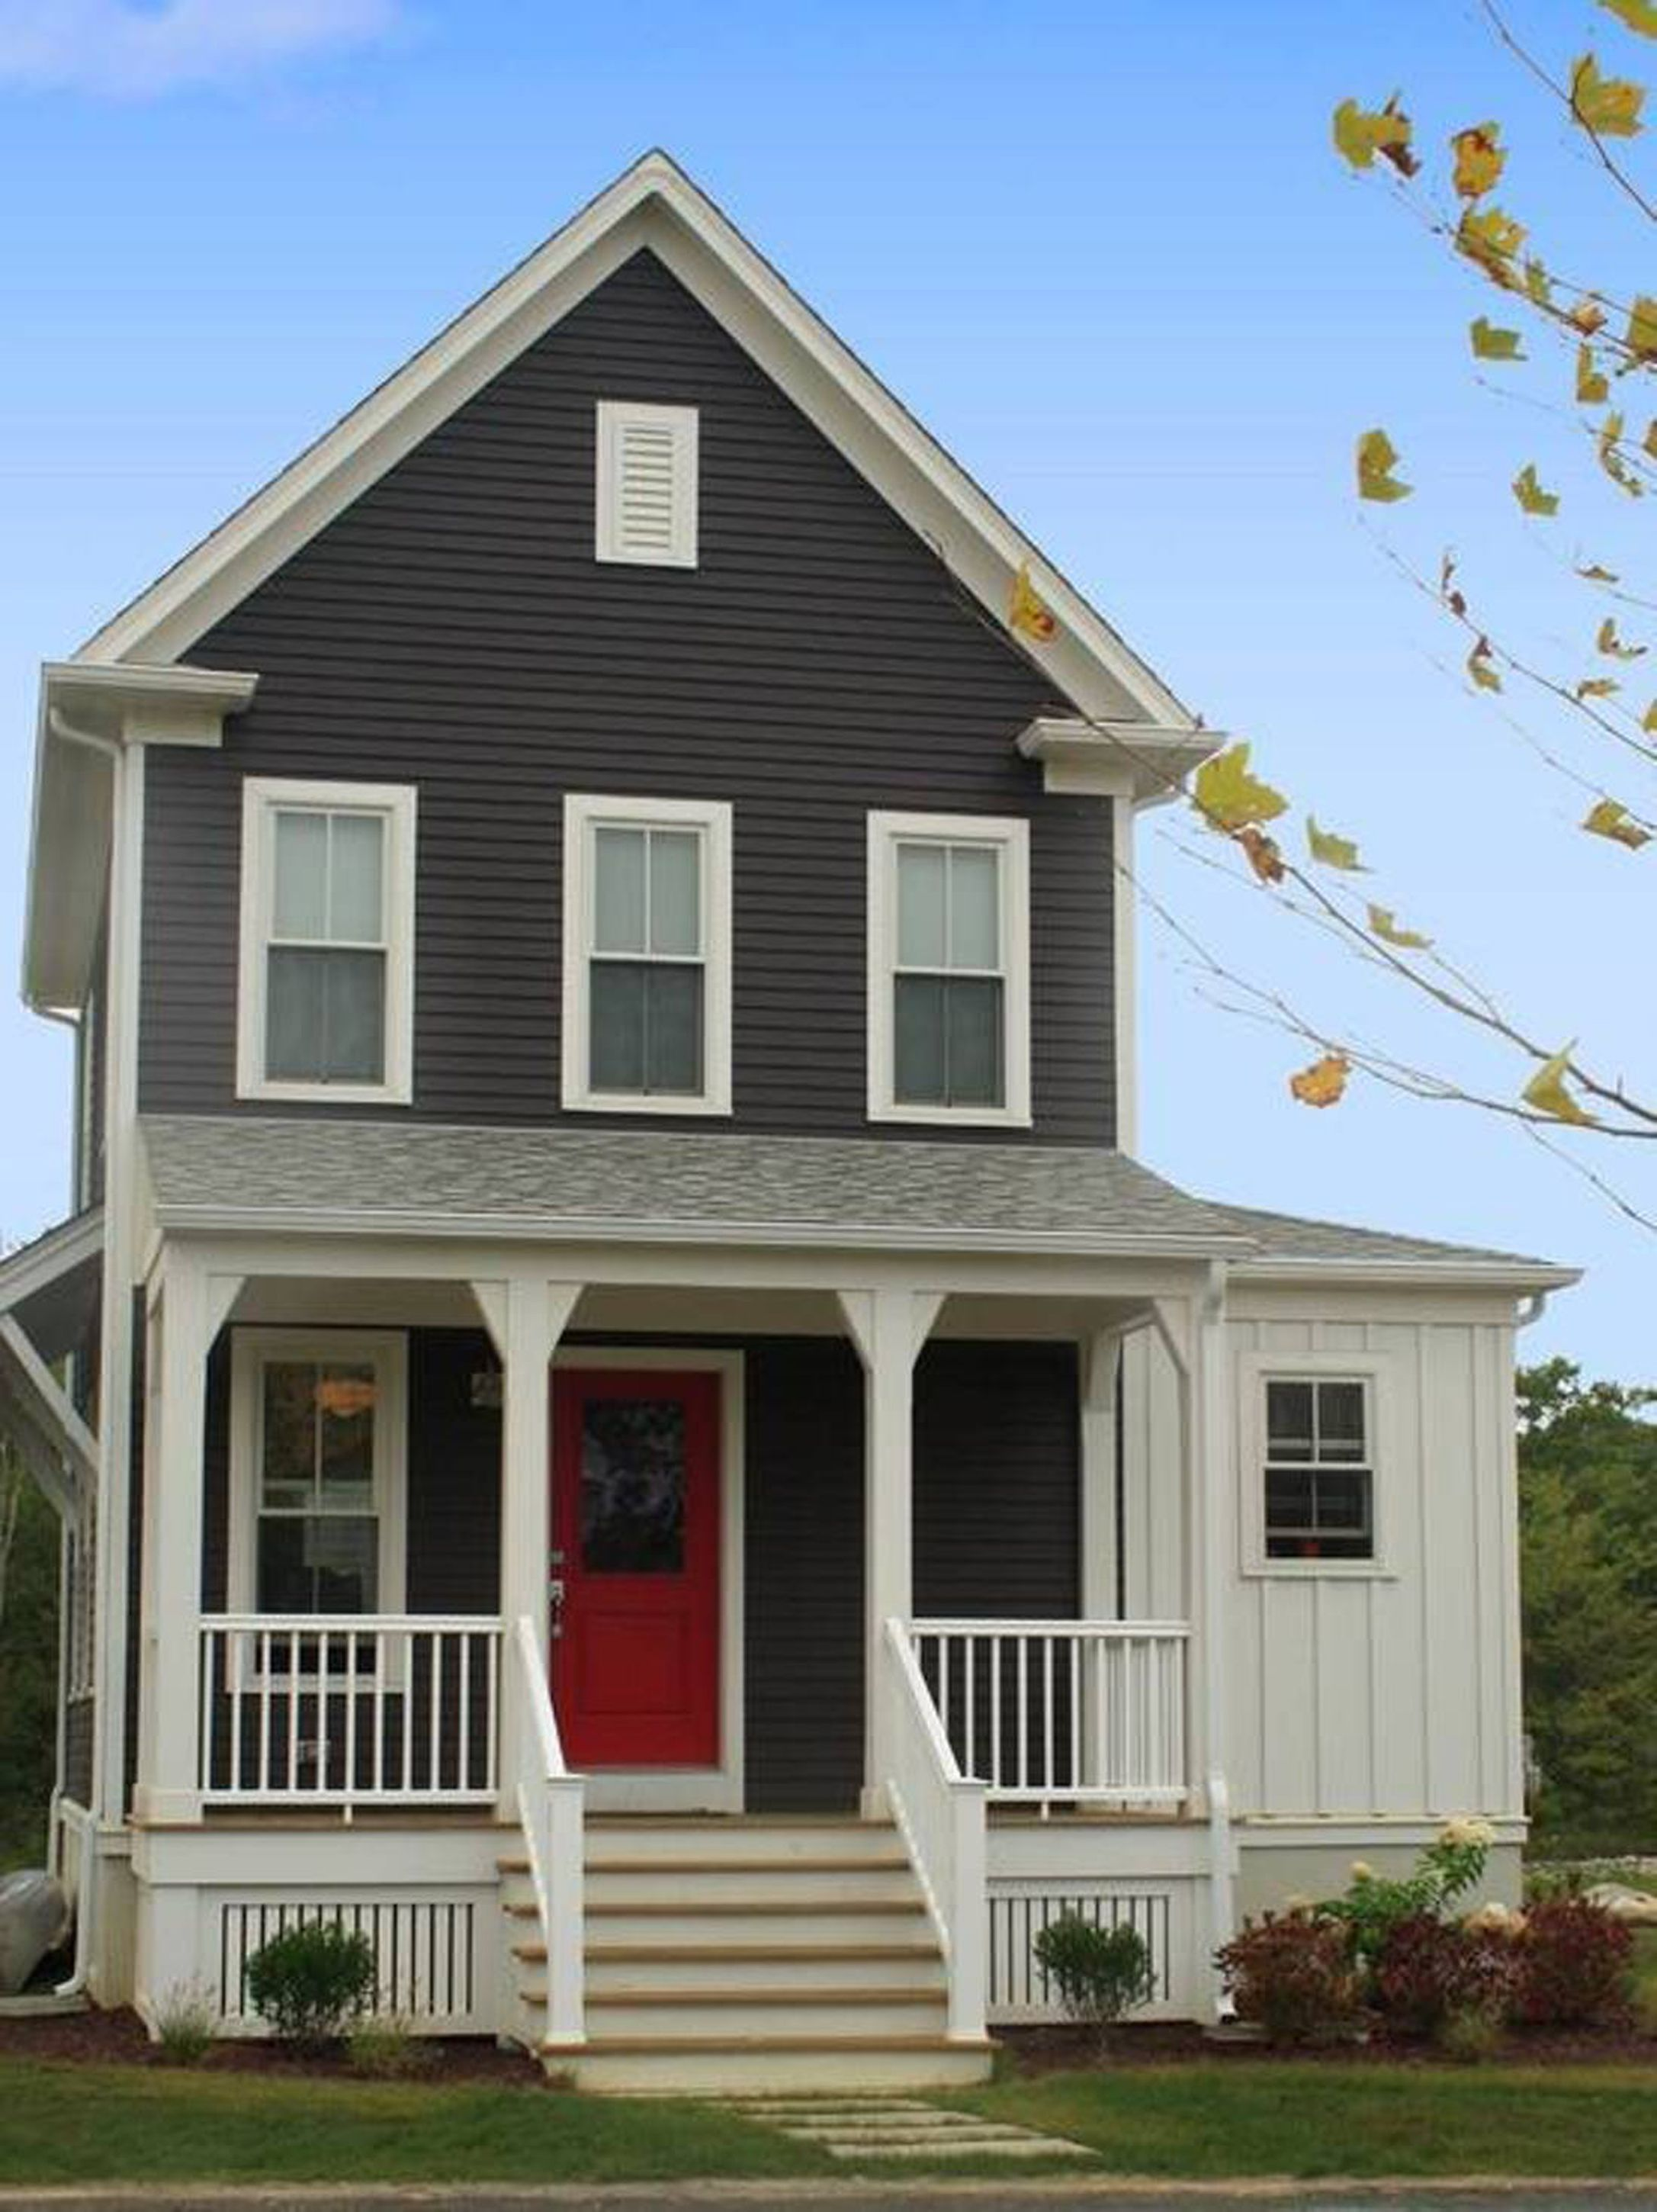 Delightful Gray House Exterior Paint Idea With White Window Frames Red Door  And Delightful Gray House Exterior Paint Idea With White Window Frames  . Painting House Exterior Grey. Home Design Ideas